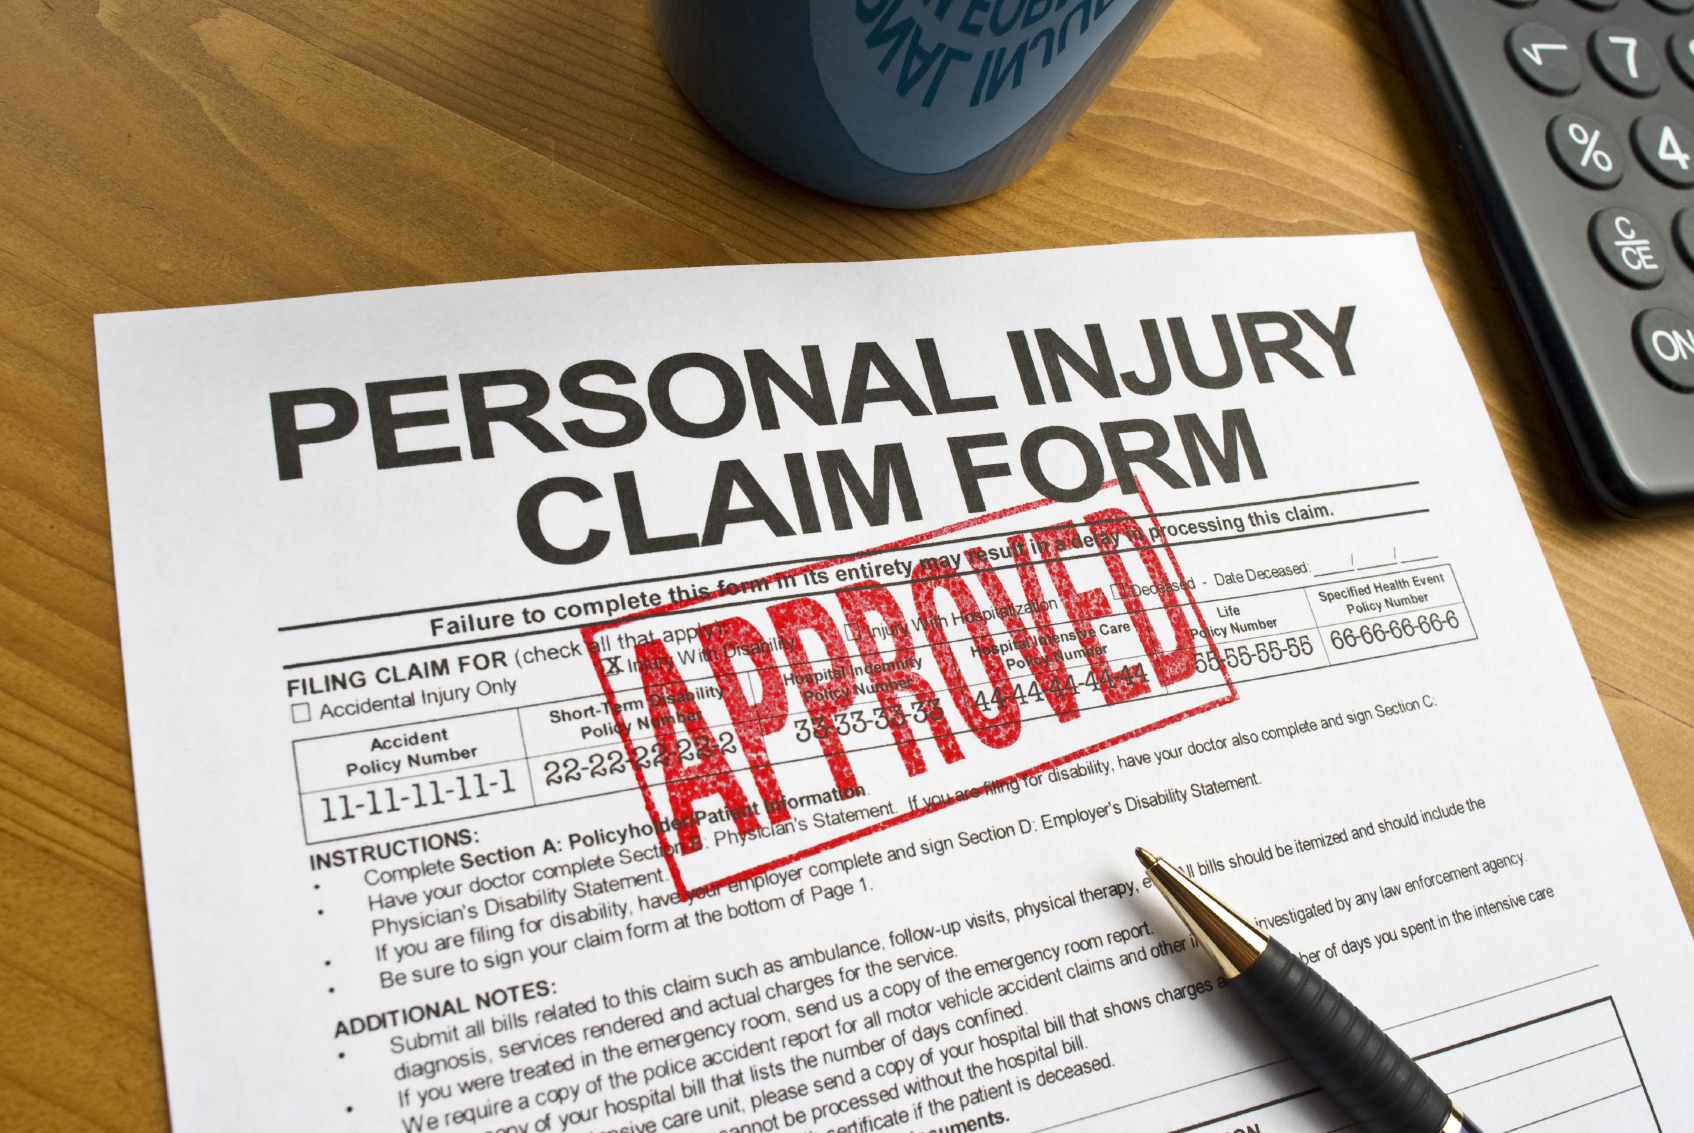 Settling A Personal Injury Claim With An Insurance Company